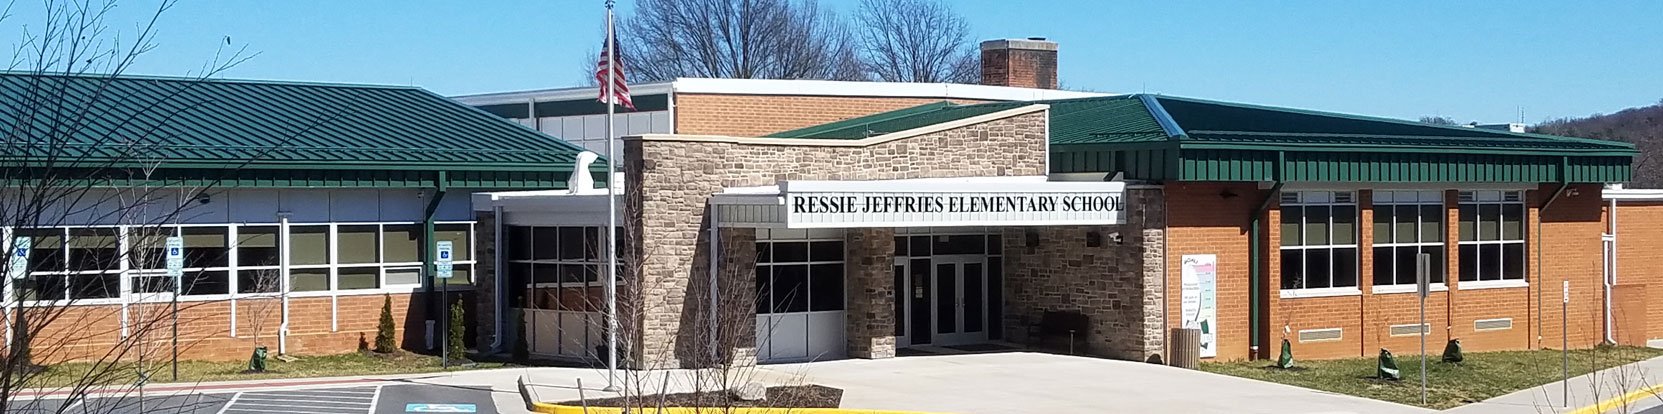 Ressie Jeffries Elementary School